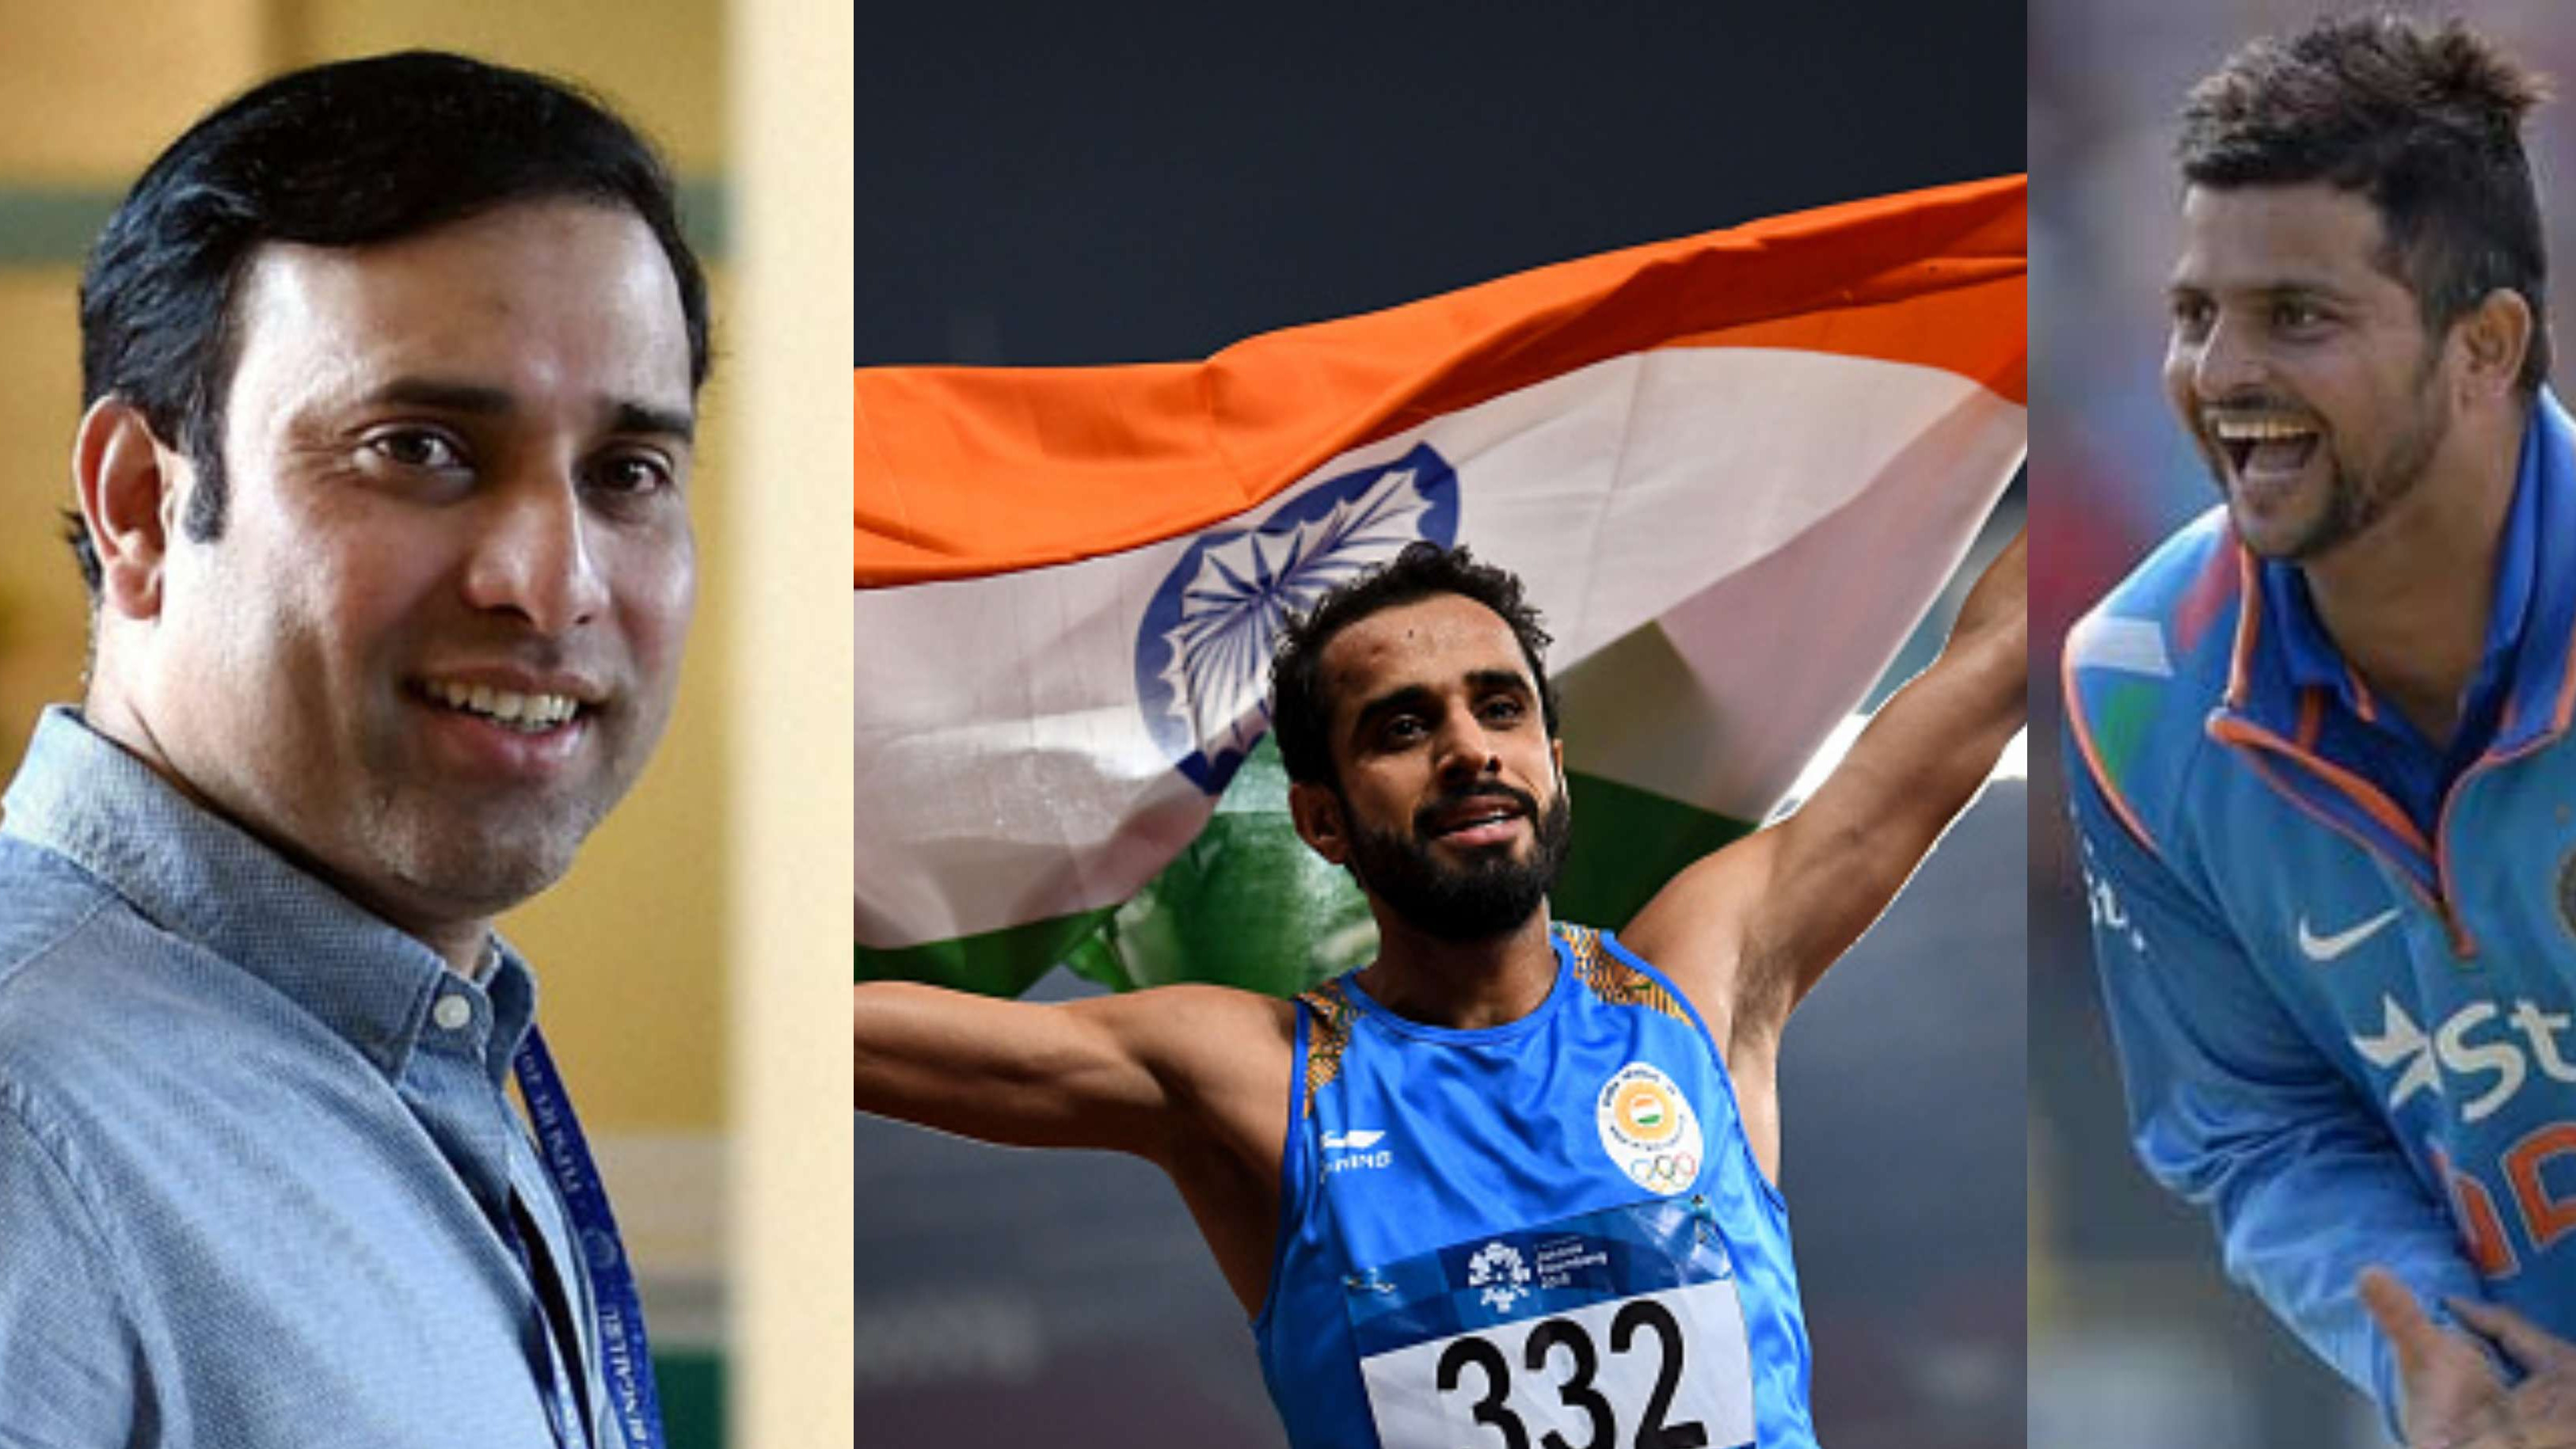 Cricket fraternity salutes gold medalist Manjit Singh for his outstanding effort in Asian Games 2018